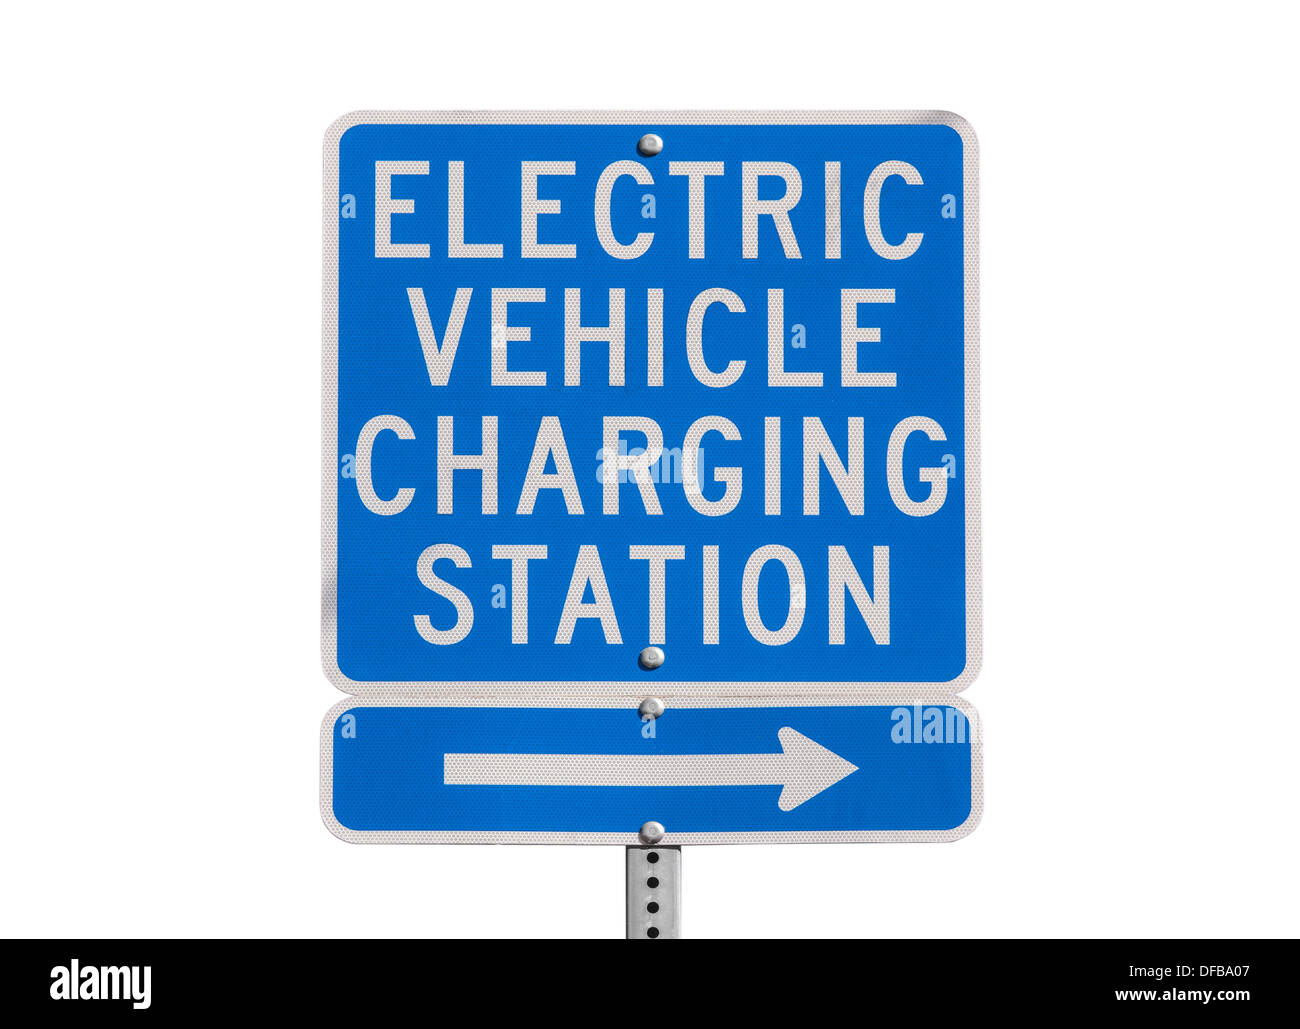 Electric vehicle charging station sign isolated with clipping path. - Stock Image